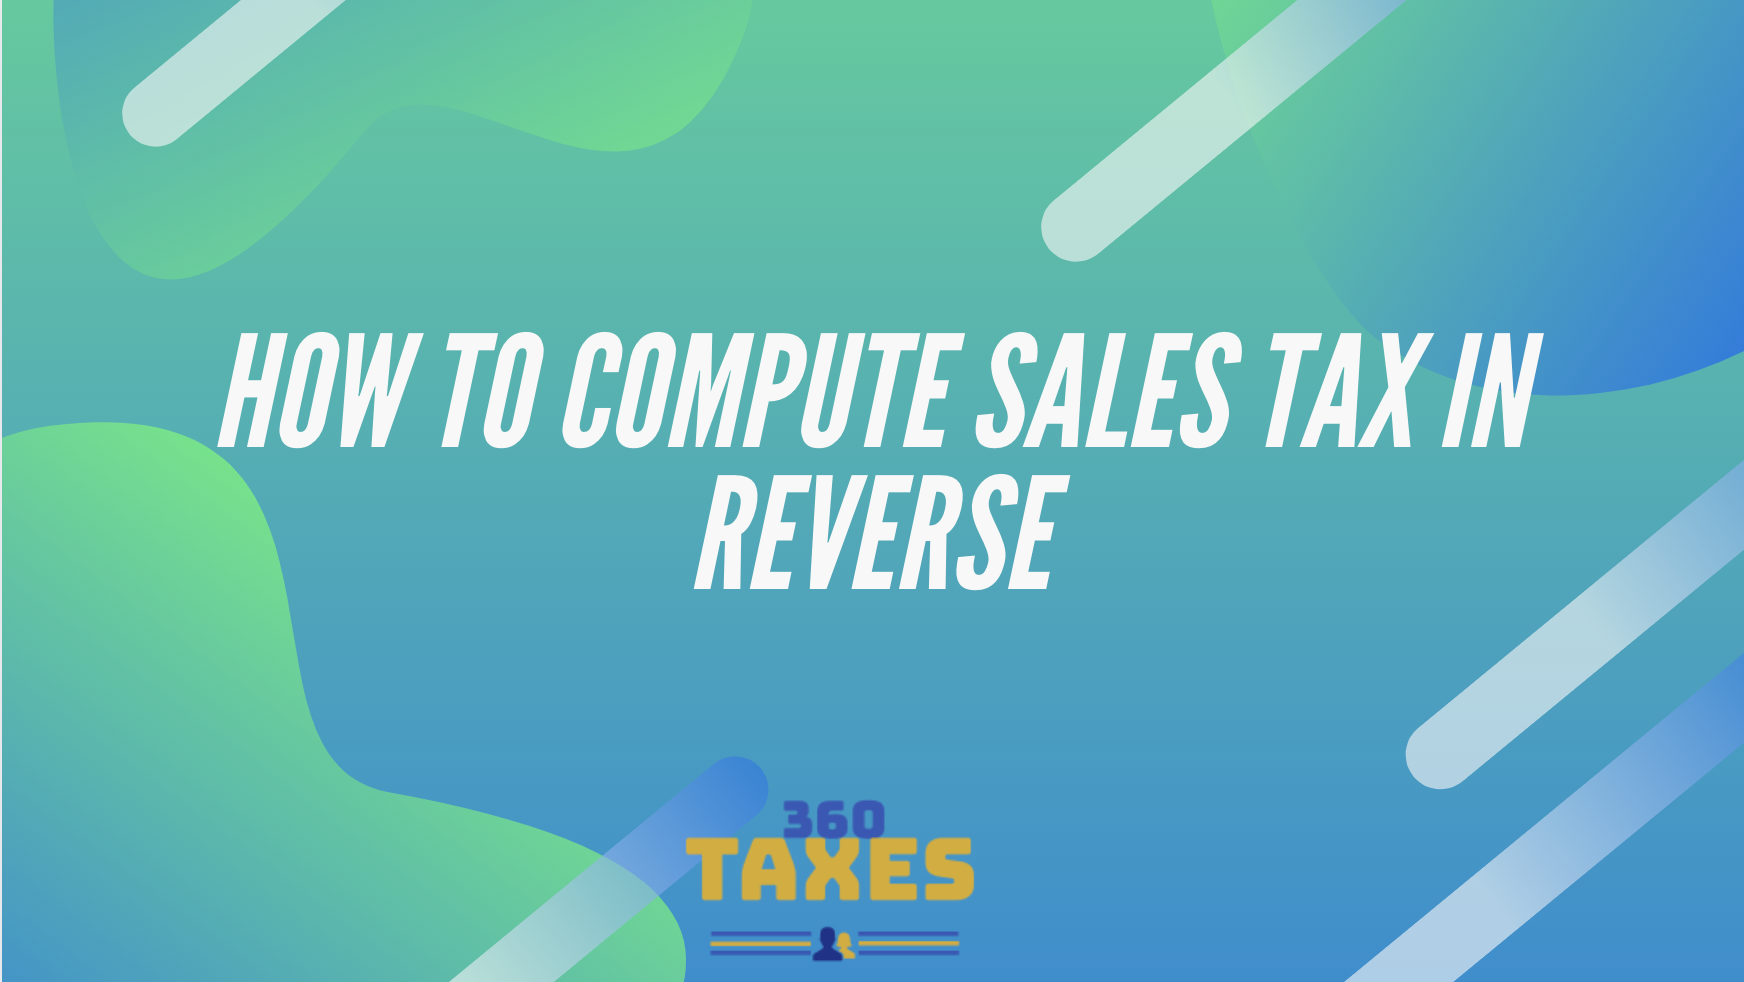 How To Compute Sales Tax In Reverse